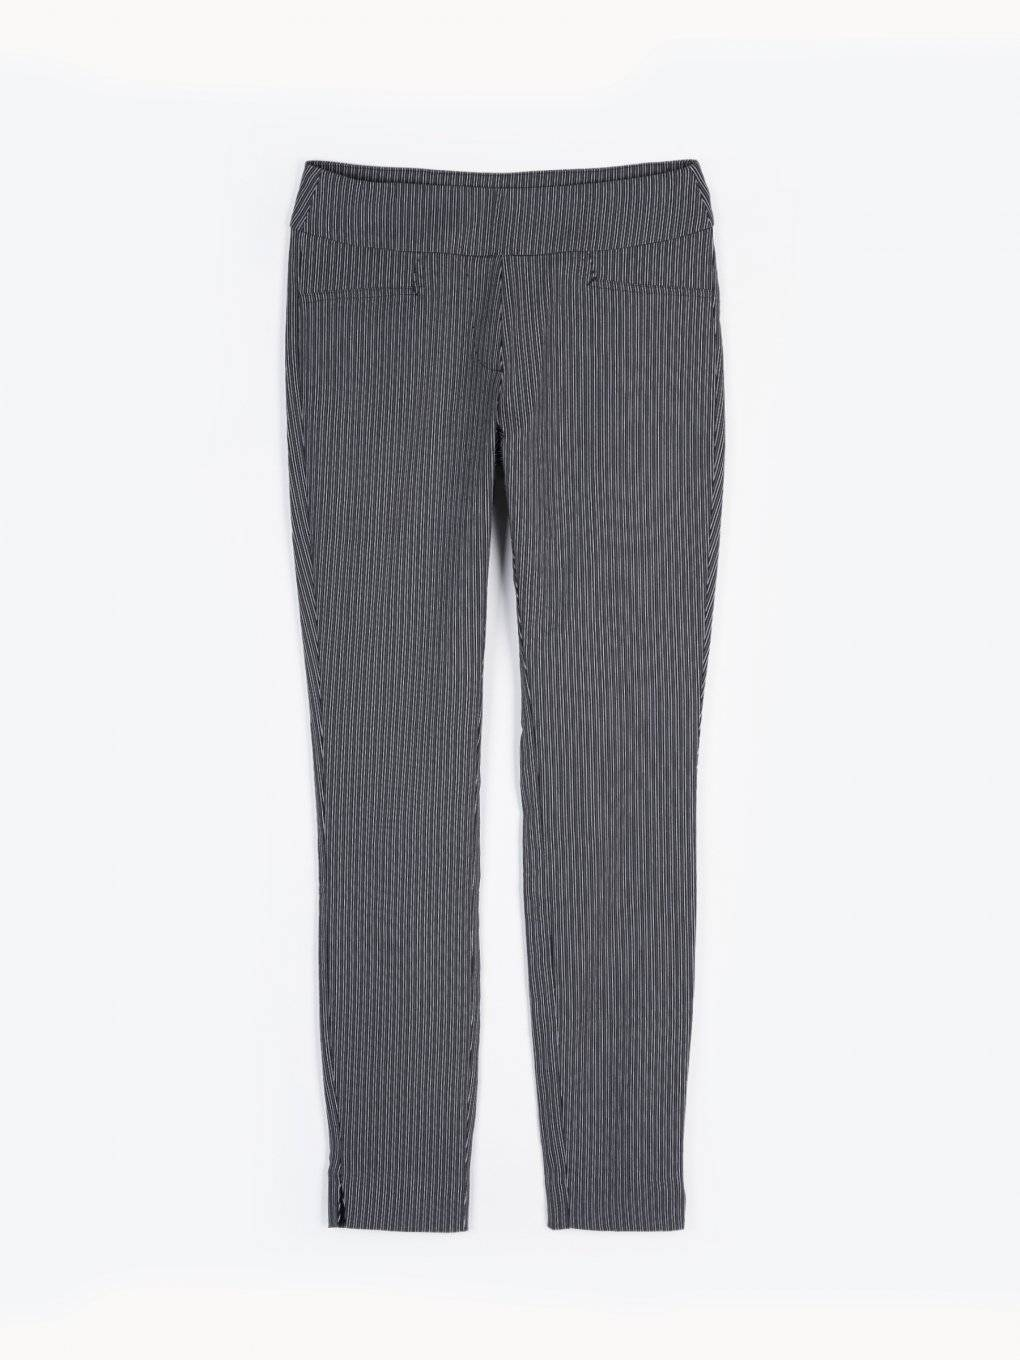 Striped slim fit trousers